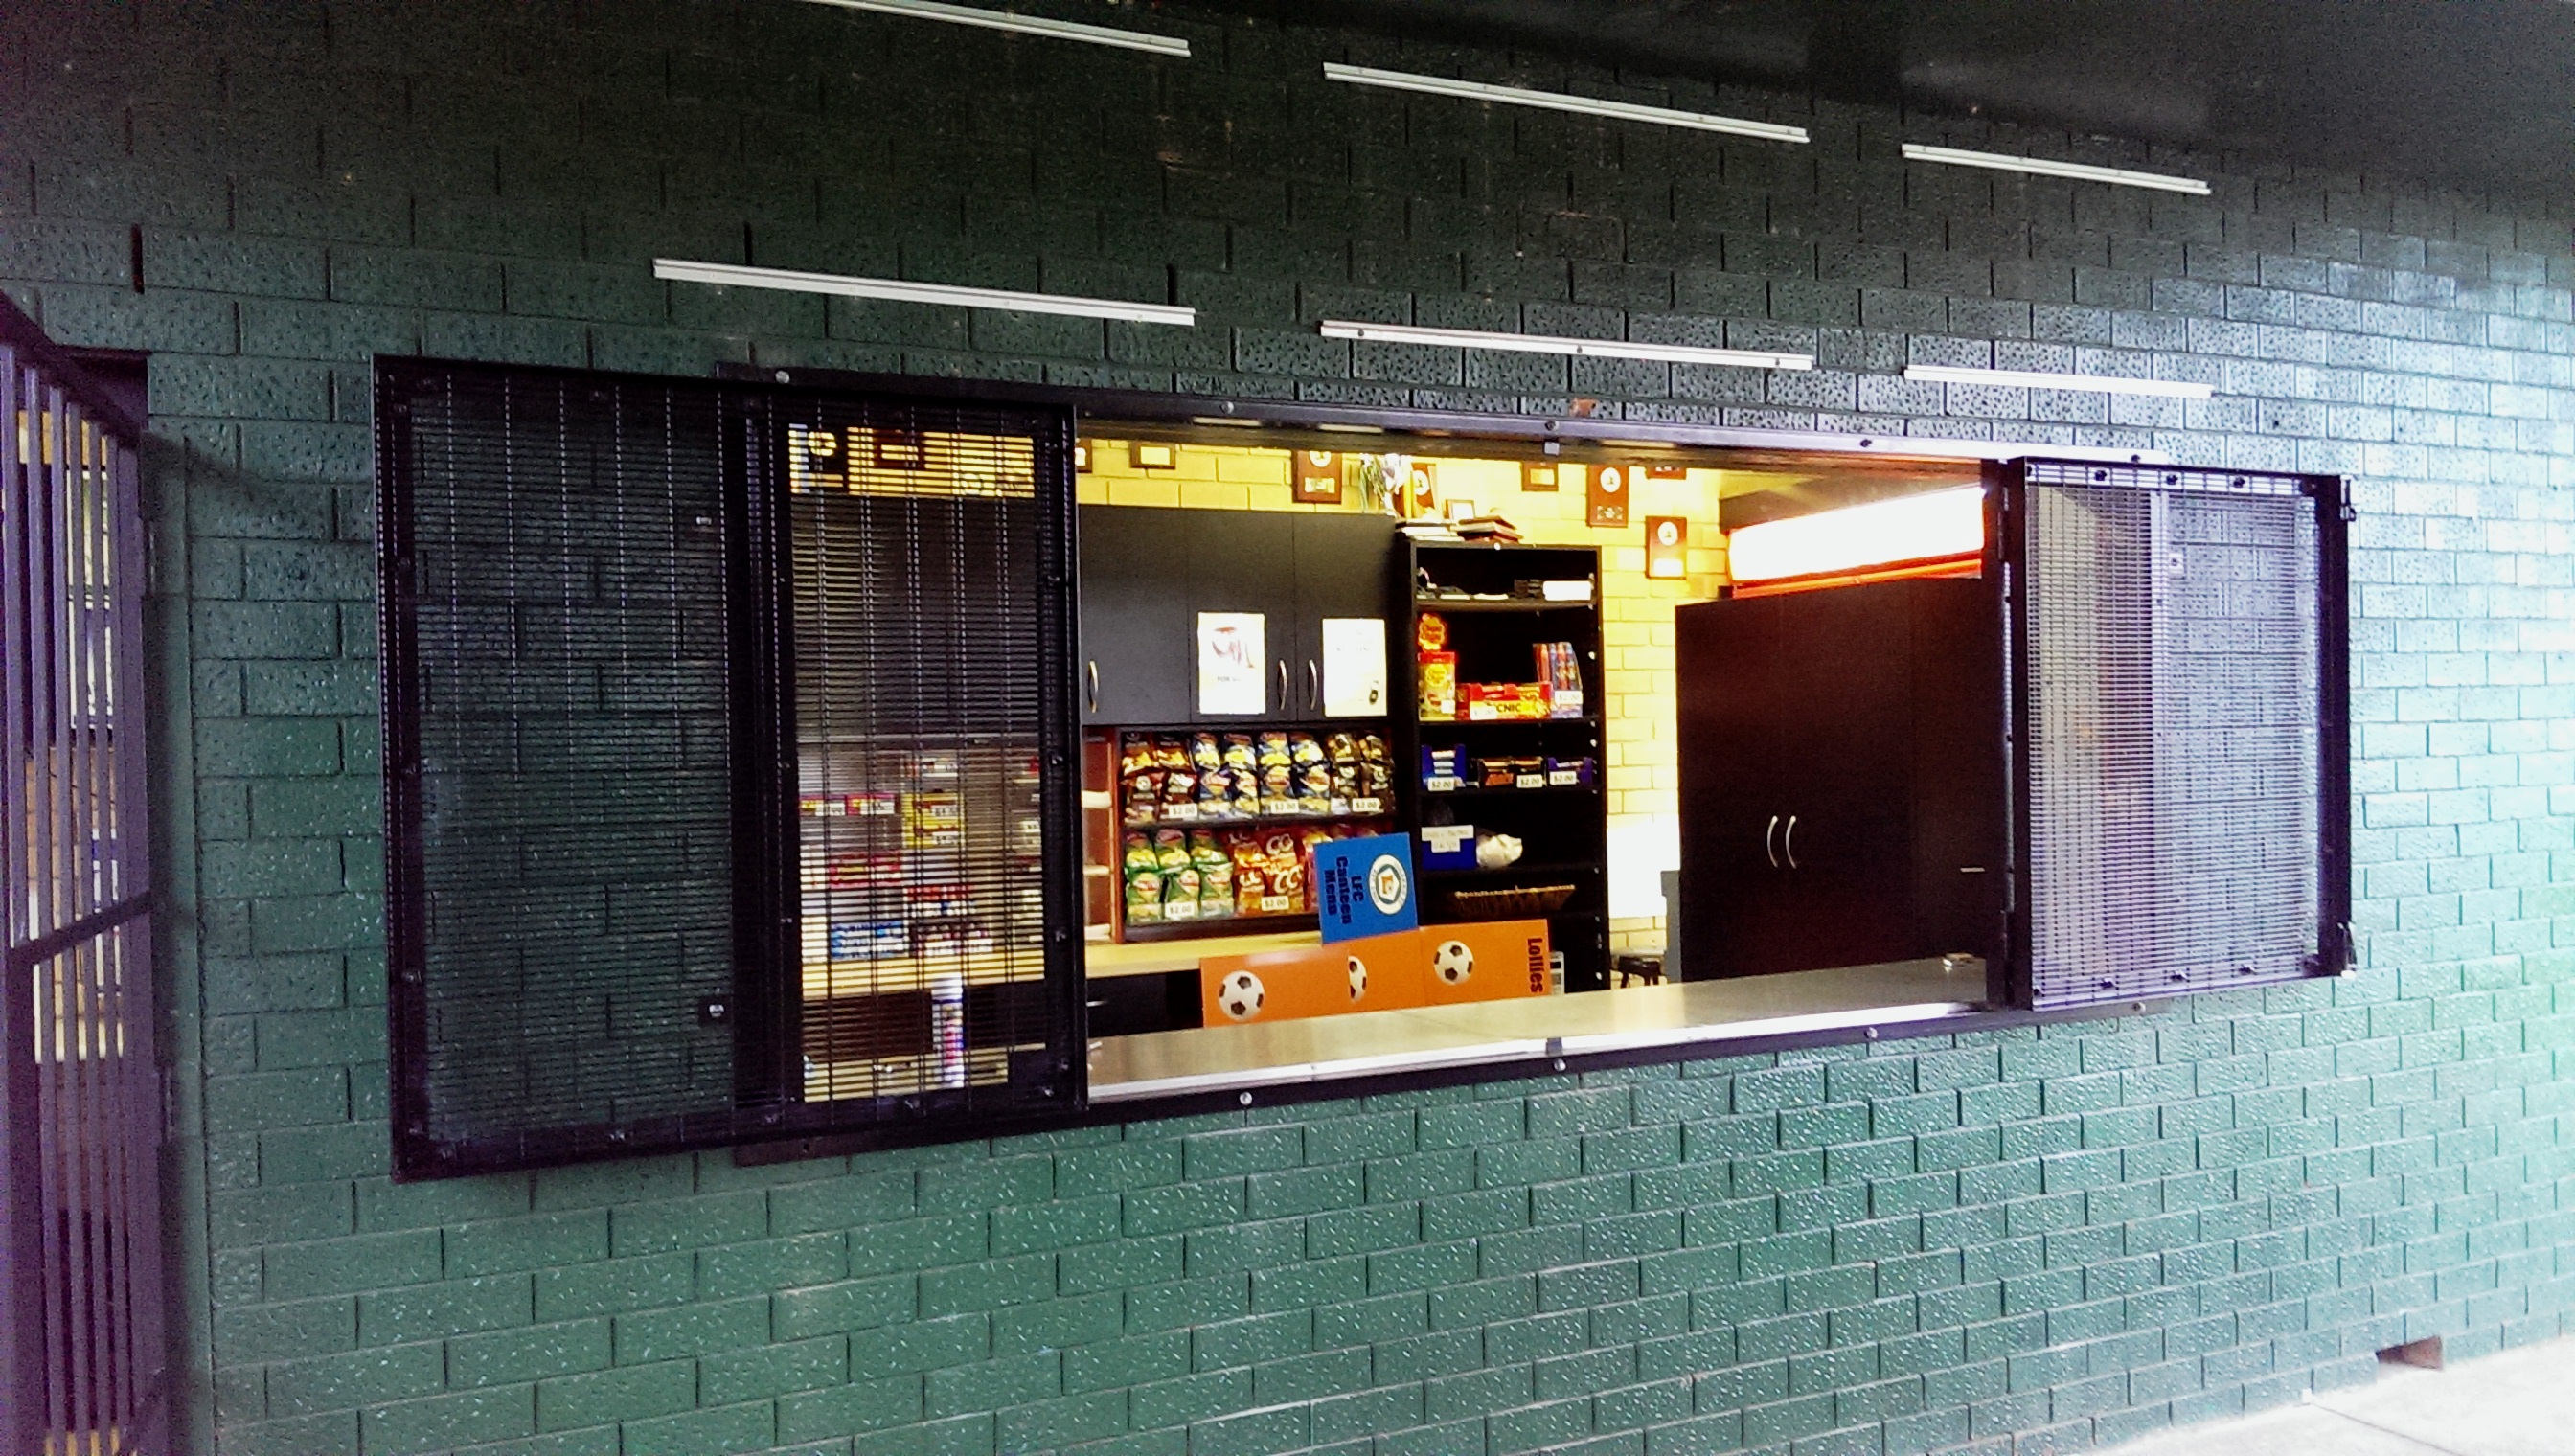 Roller Shutter Security Grille For Lugarno Football Club